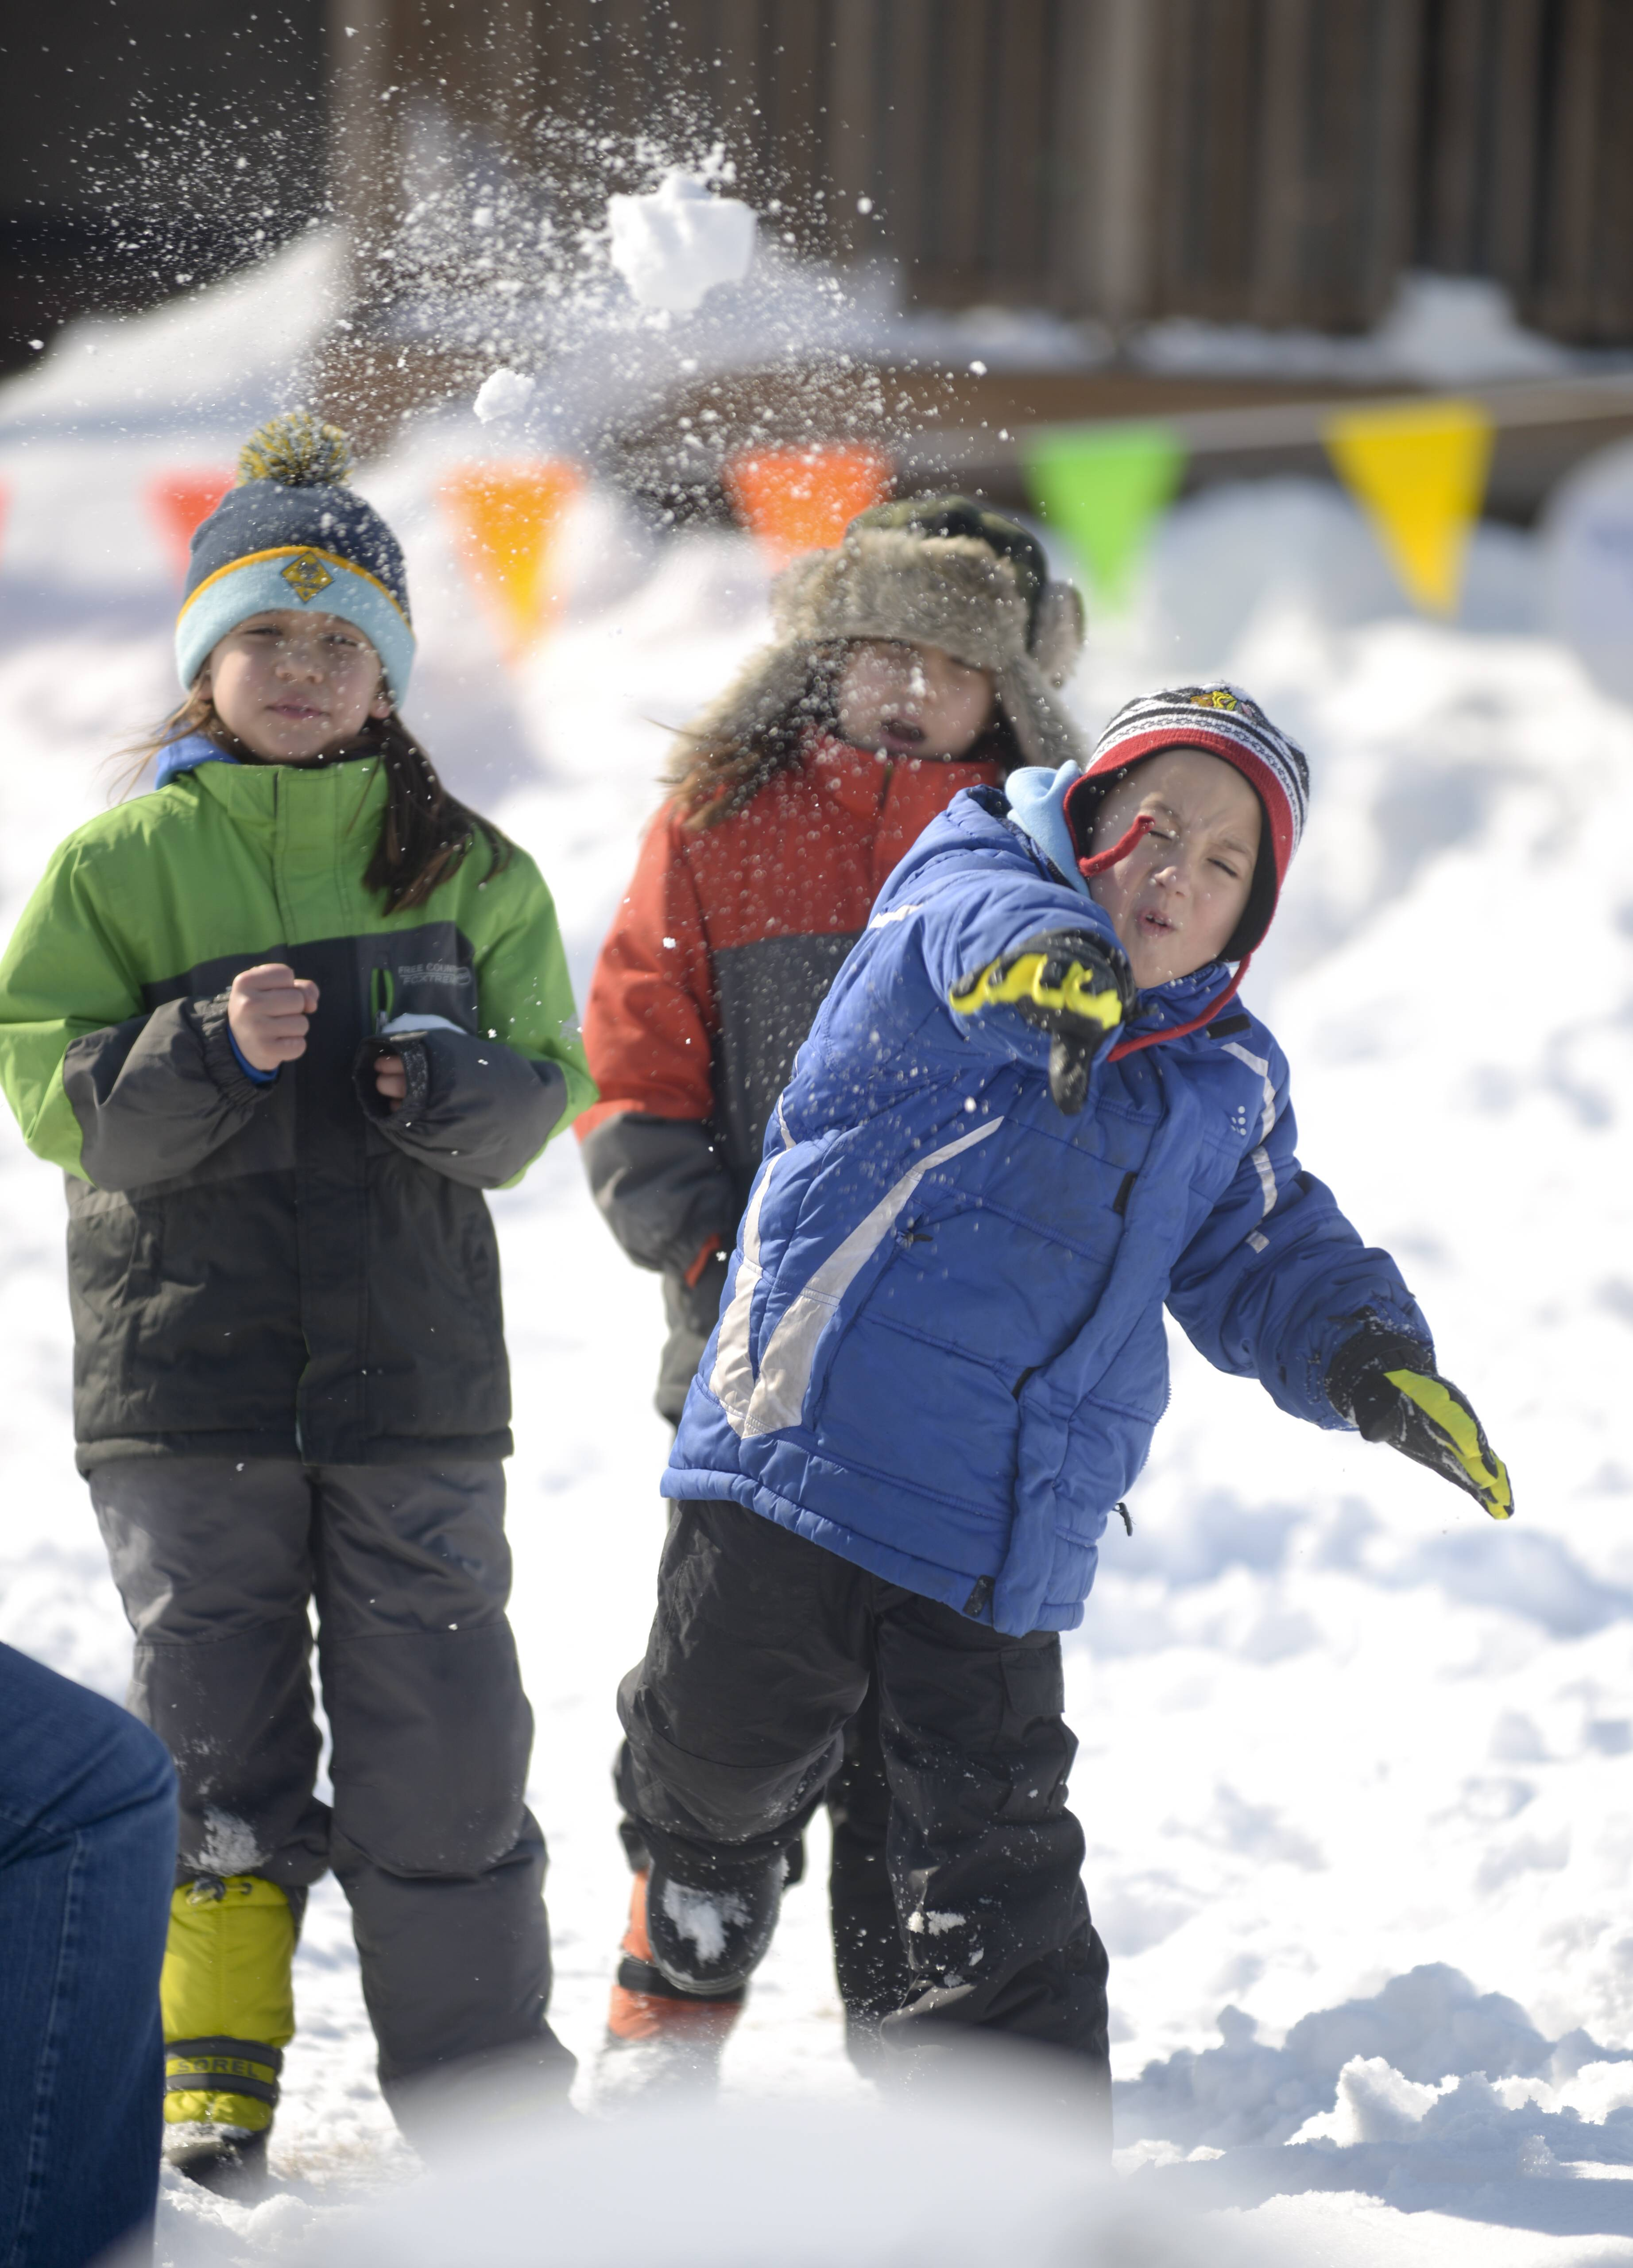 Daniel Jirsa, 9, of Wheaton tries out the snowball toss Sunday at the Glen Ellyn Park District's 2nd annual Arctic Blast event at Maryknoll Park. Daniel was there with other members of Wheaton's Cub Scout Pack 317.